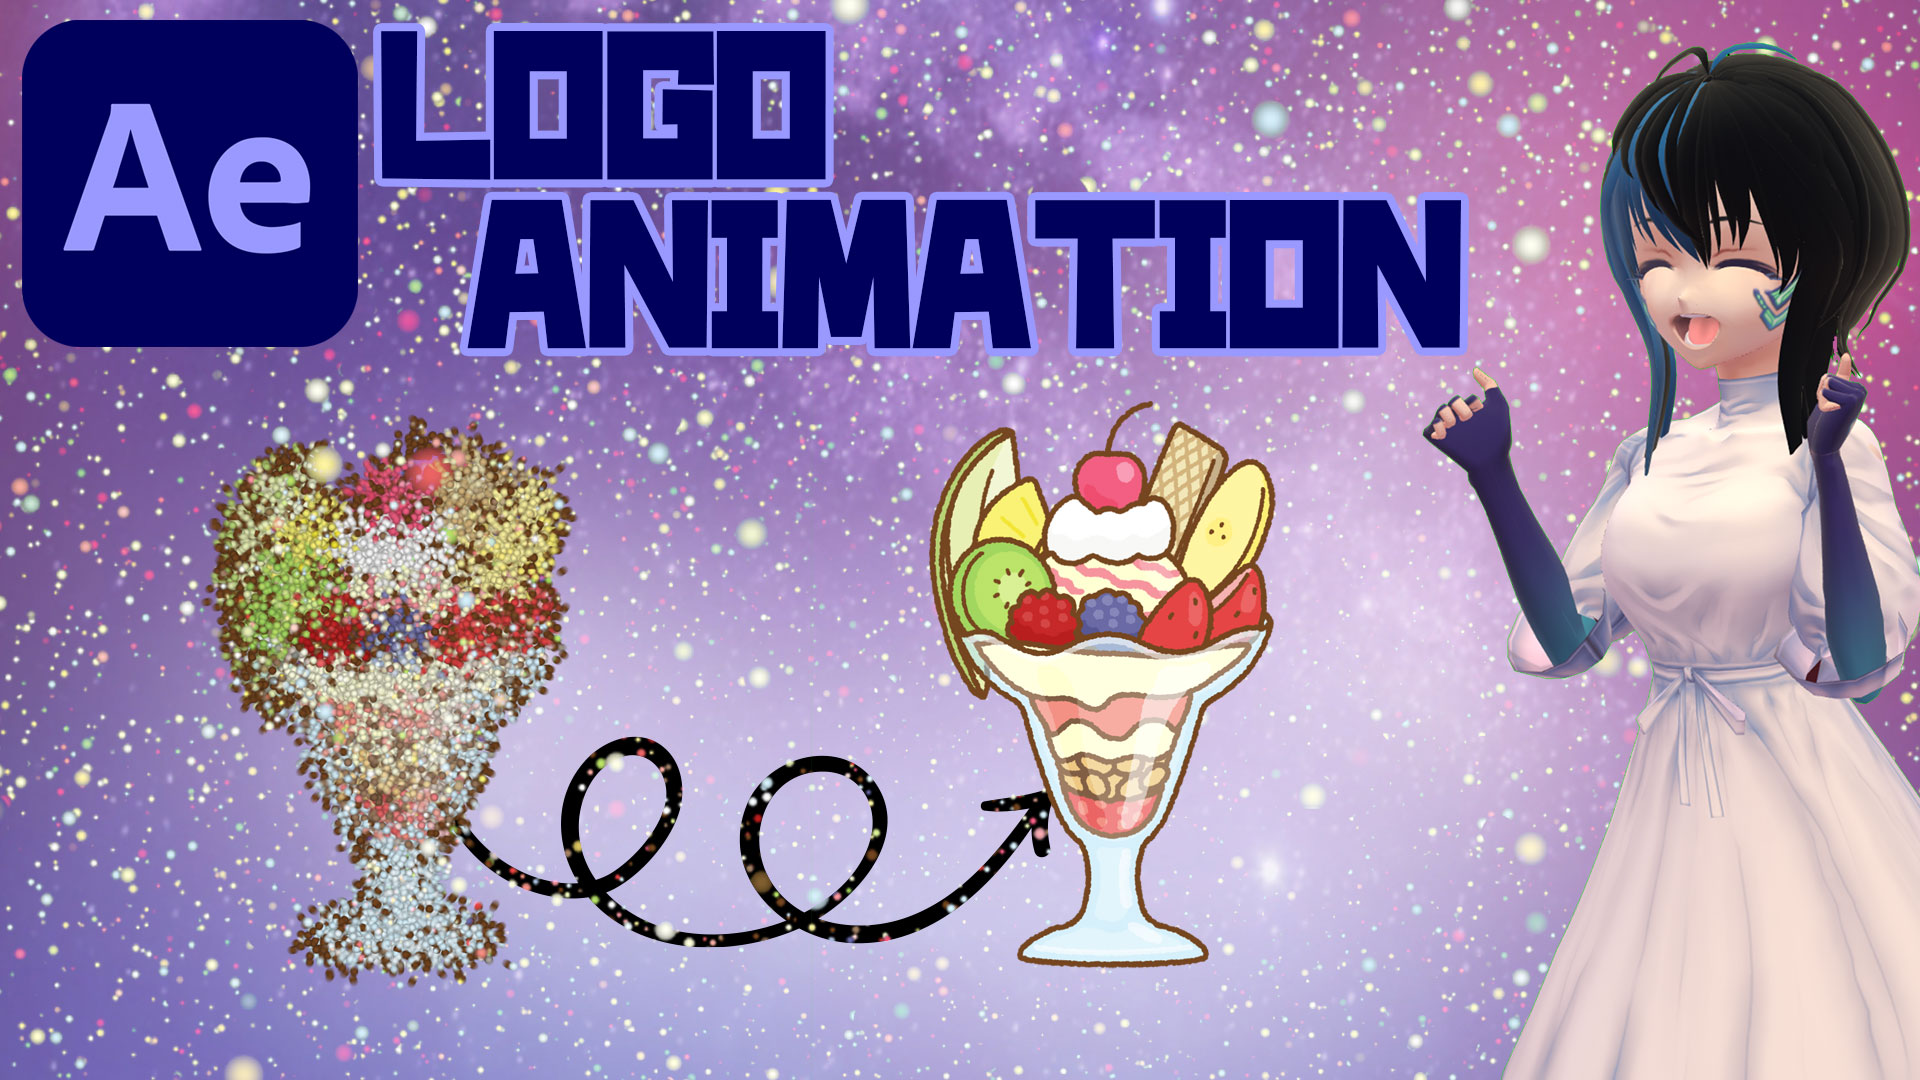 【After Effects】[TEXT ANIMATION] LOGO ANIMATION WITH CC BALL ACTION EFFECT